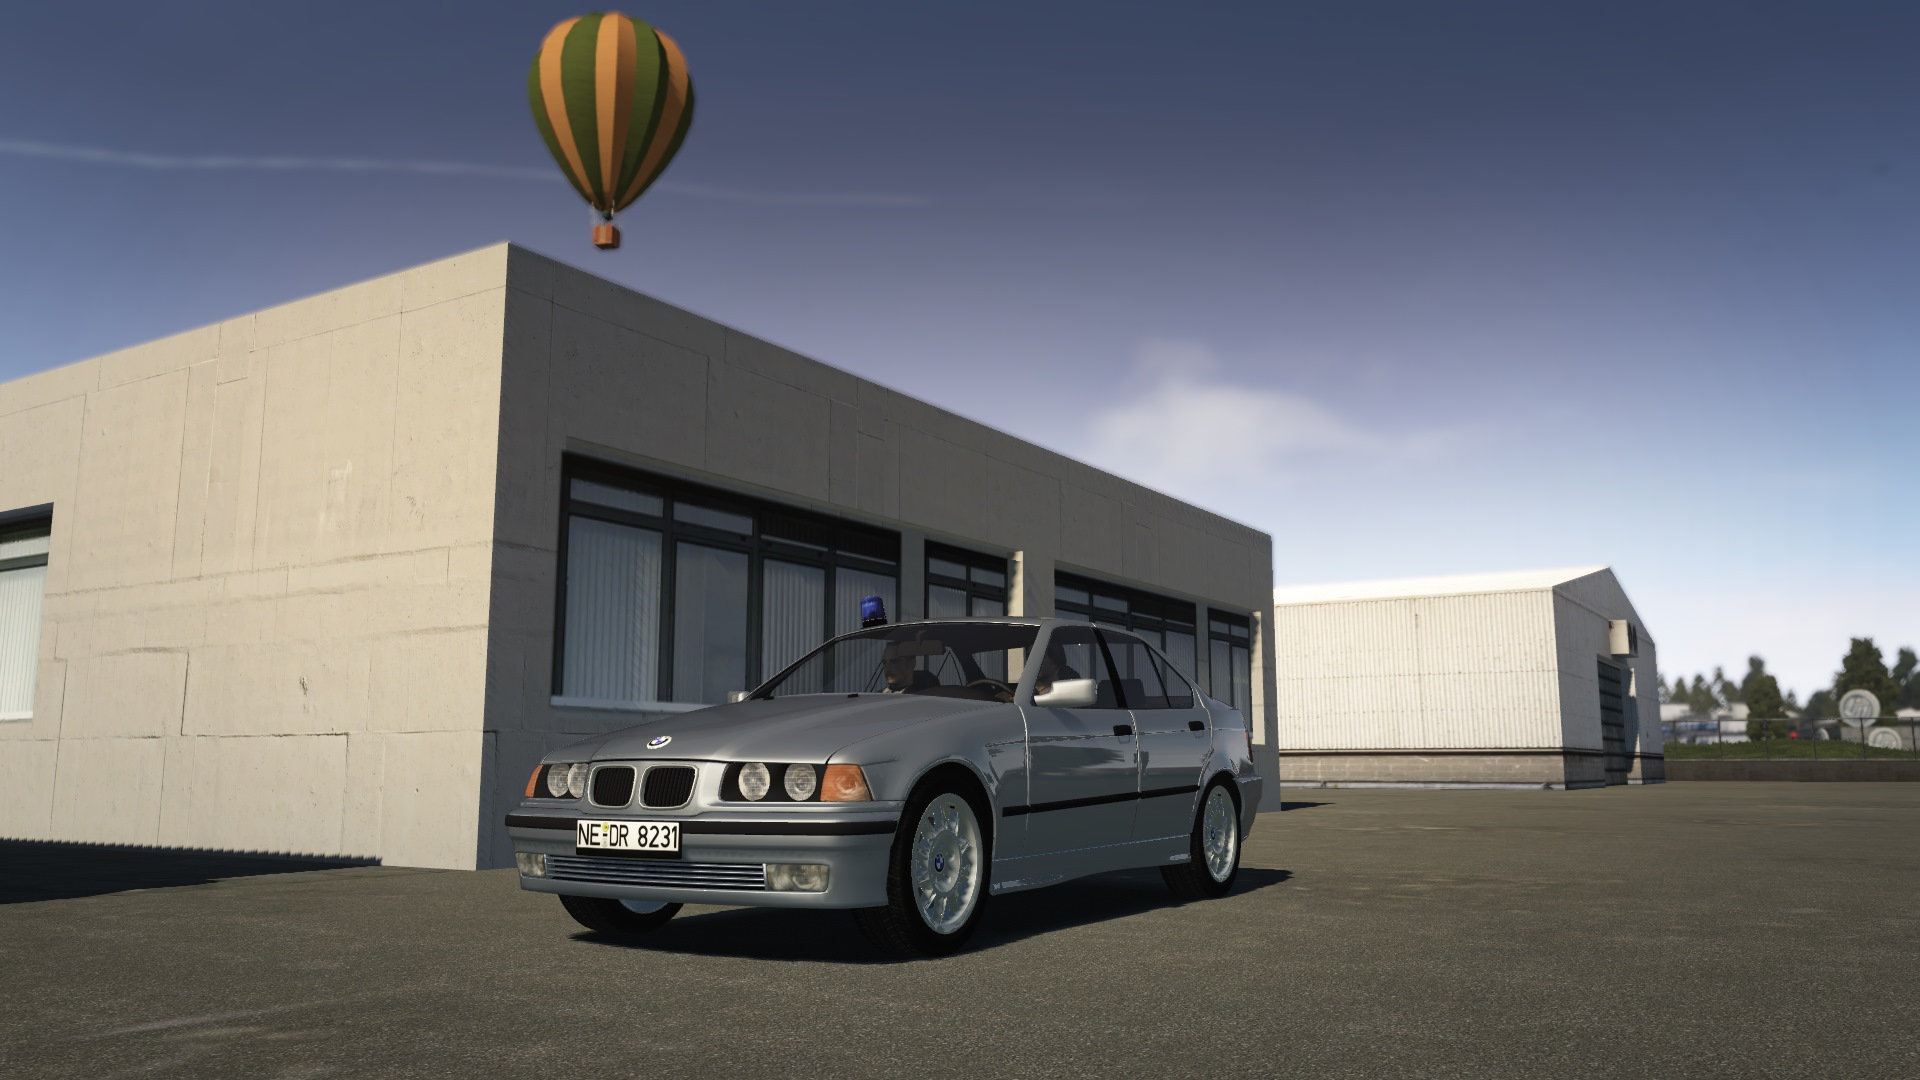 http://gameshots.eu/images/2018/03/18/bmwe36.jpg